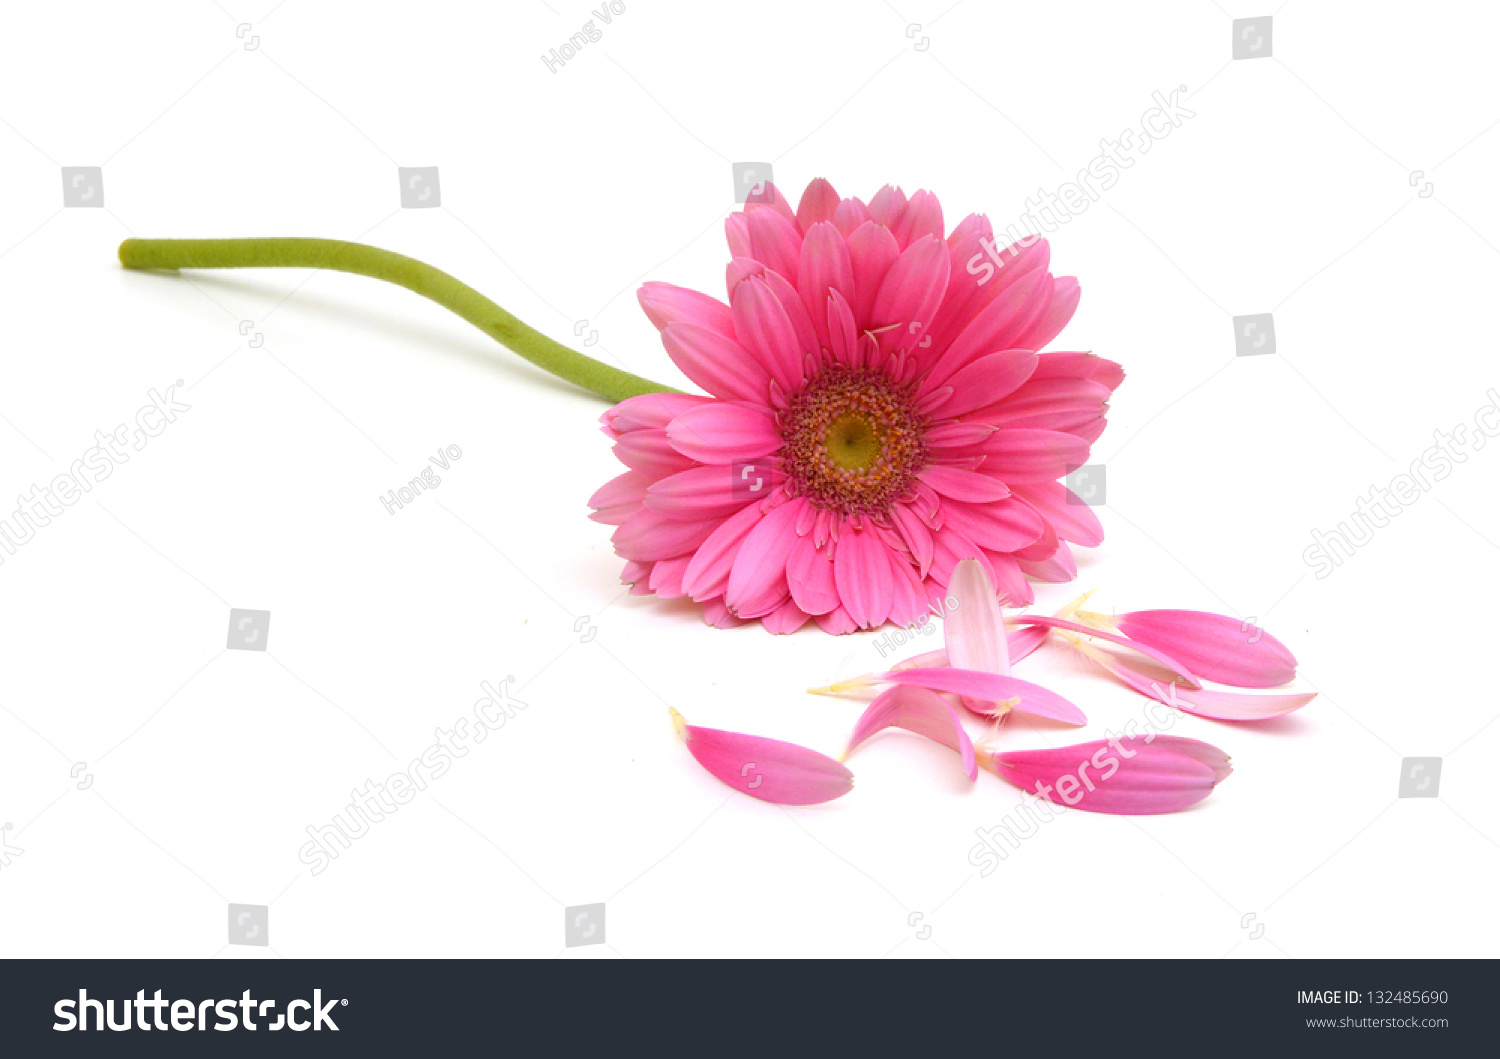 Gerbera Daisy Flower Petals On White Stock Photo Edit Now